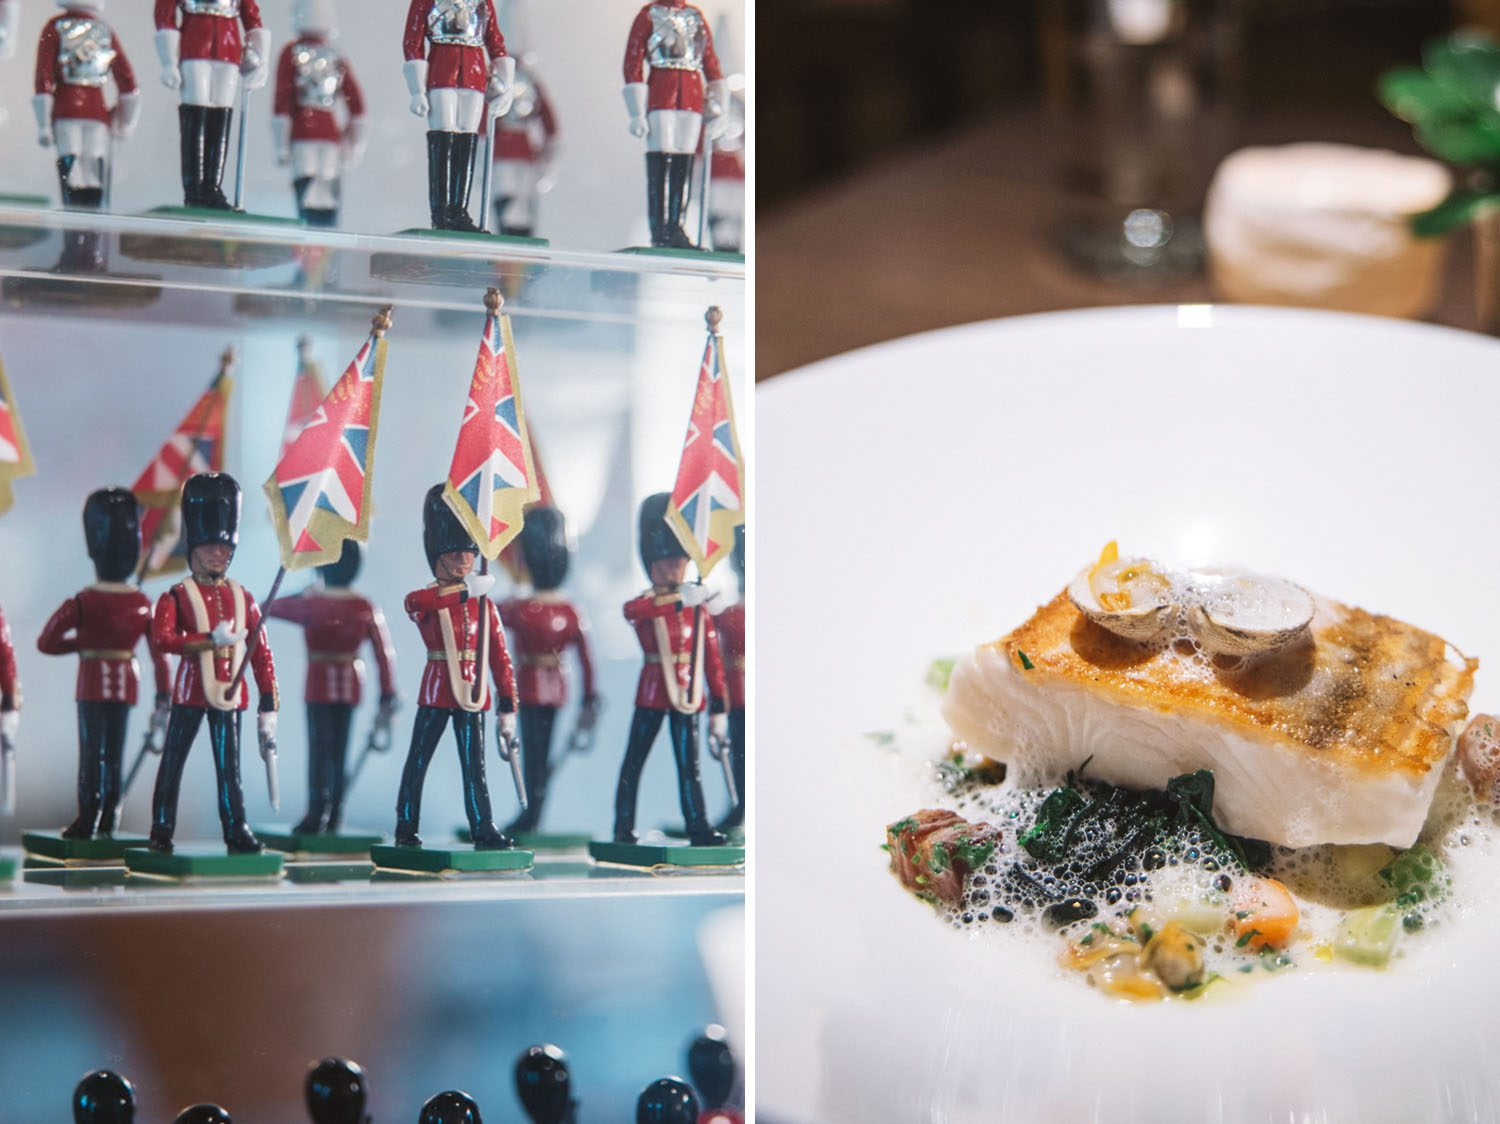 Dinner by Michelin-starred chefs The Galvin Brothers at The Athenaeum